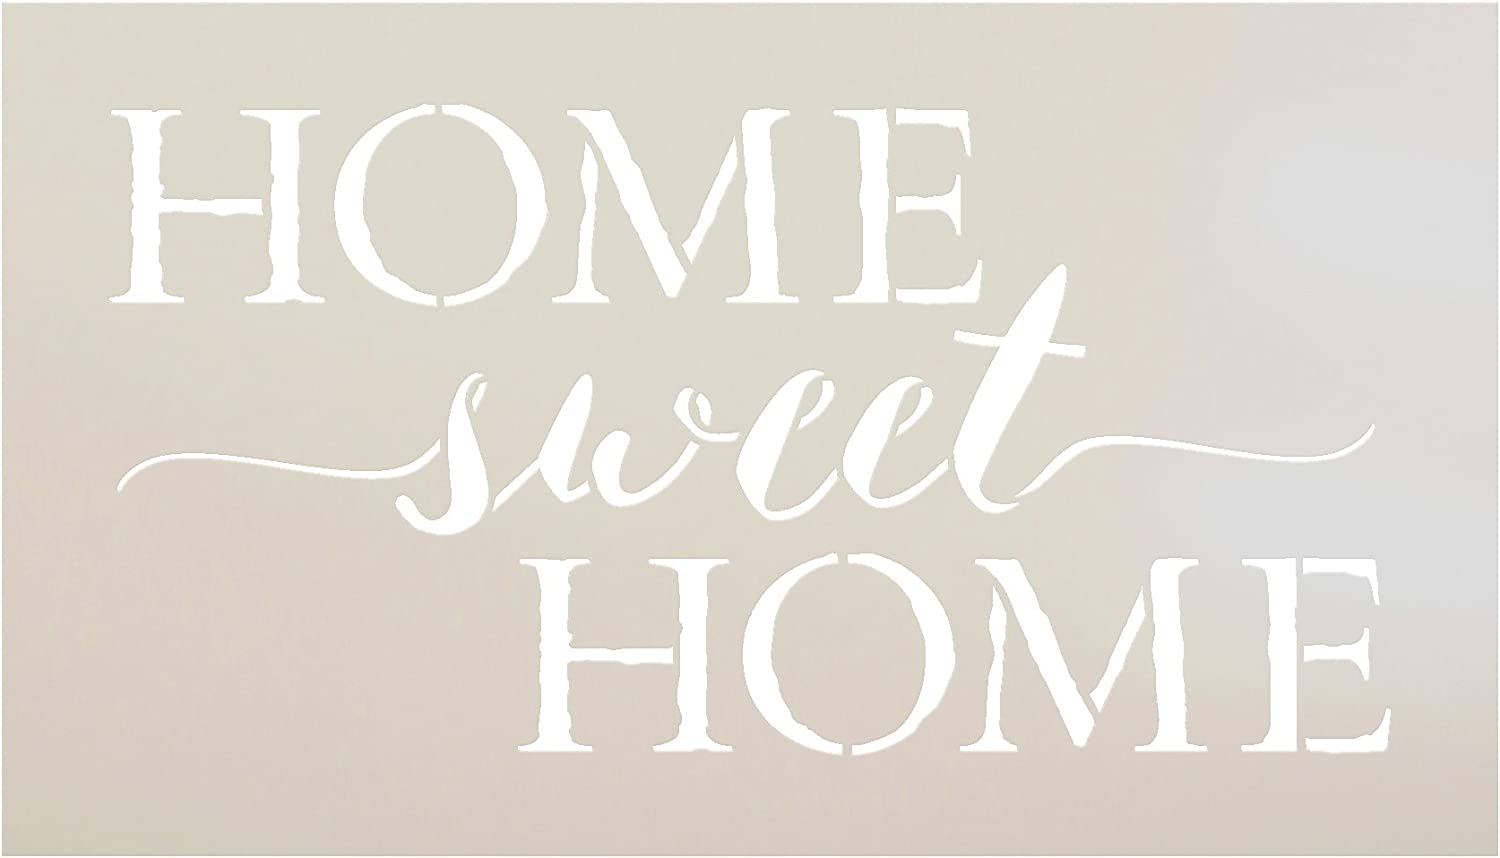 "Home Sweet Home Word Stencil by StudioR12 | Charming Rustic - Reusable Mylar Template | Painting, Chalk, Mixed Media | DIY Home Decor - STCL1749 | Select Size | (14"" x 8"")"